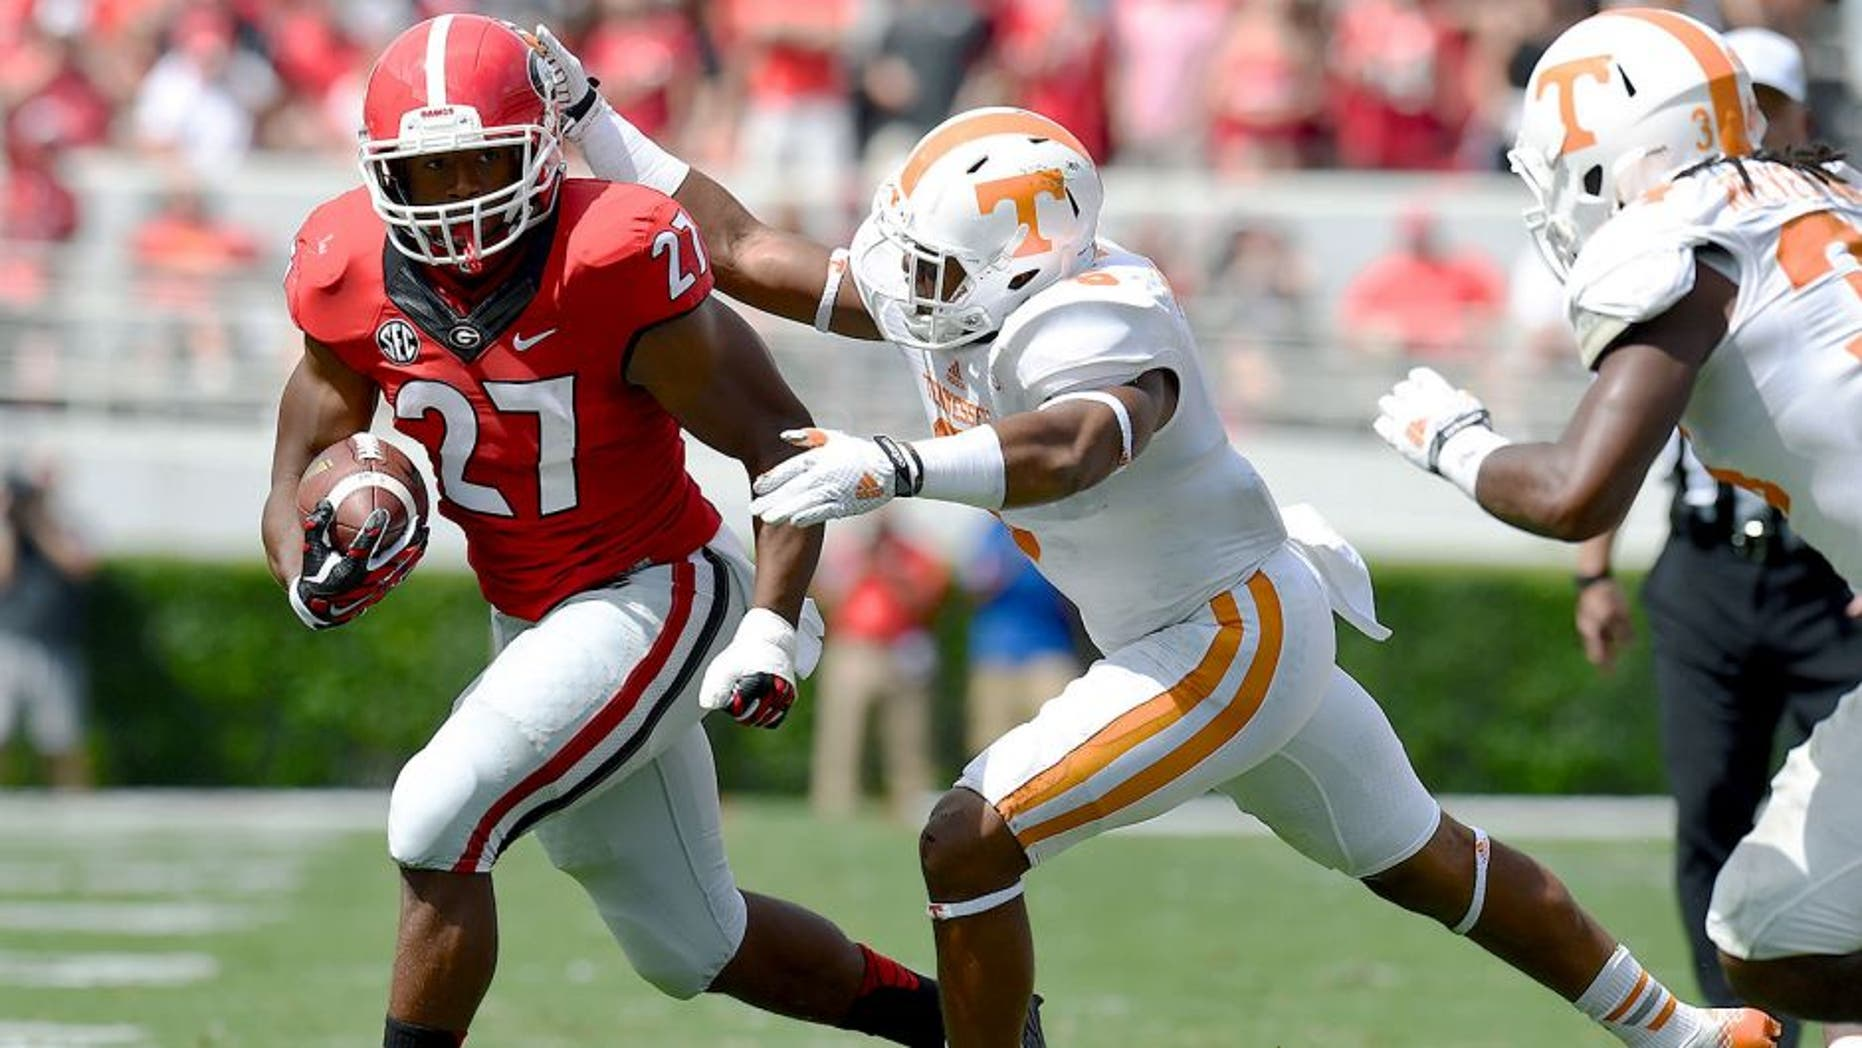 Sep 27, 2014; Athens, GA, USA; Georgia Bulldogs running back Nick Chubb (27) runs against Tennessee Volunteers defensive back Todd Kelly Jr. (6) during the first half at Sanford Stadium. Mandatory Credit: Dale Zanine-USA TODAY Sports